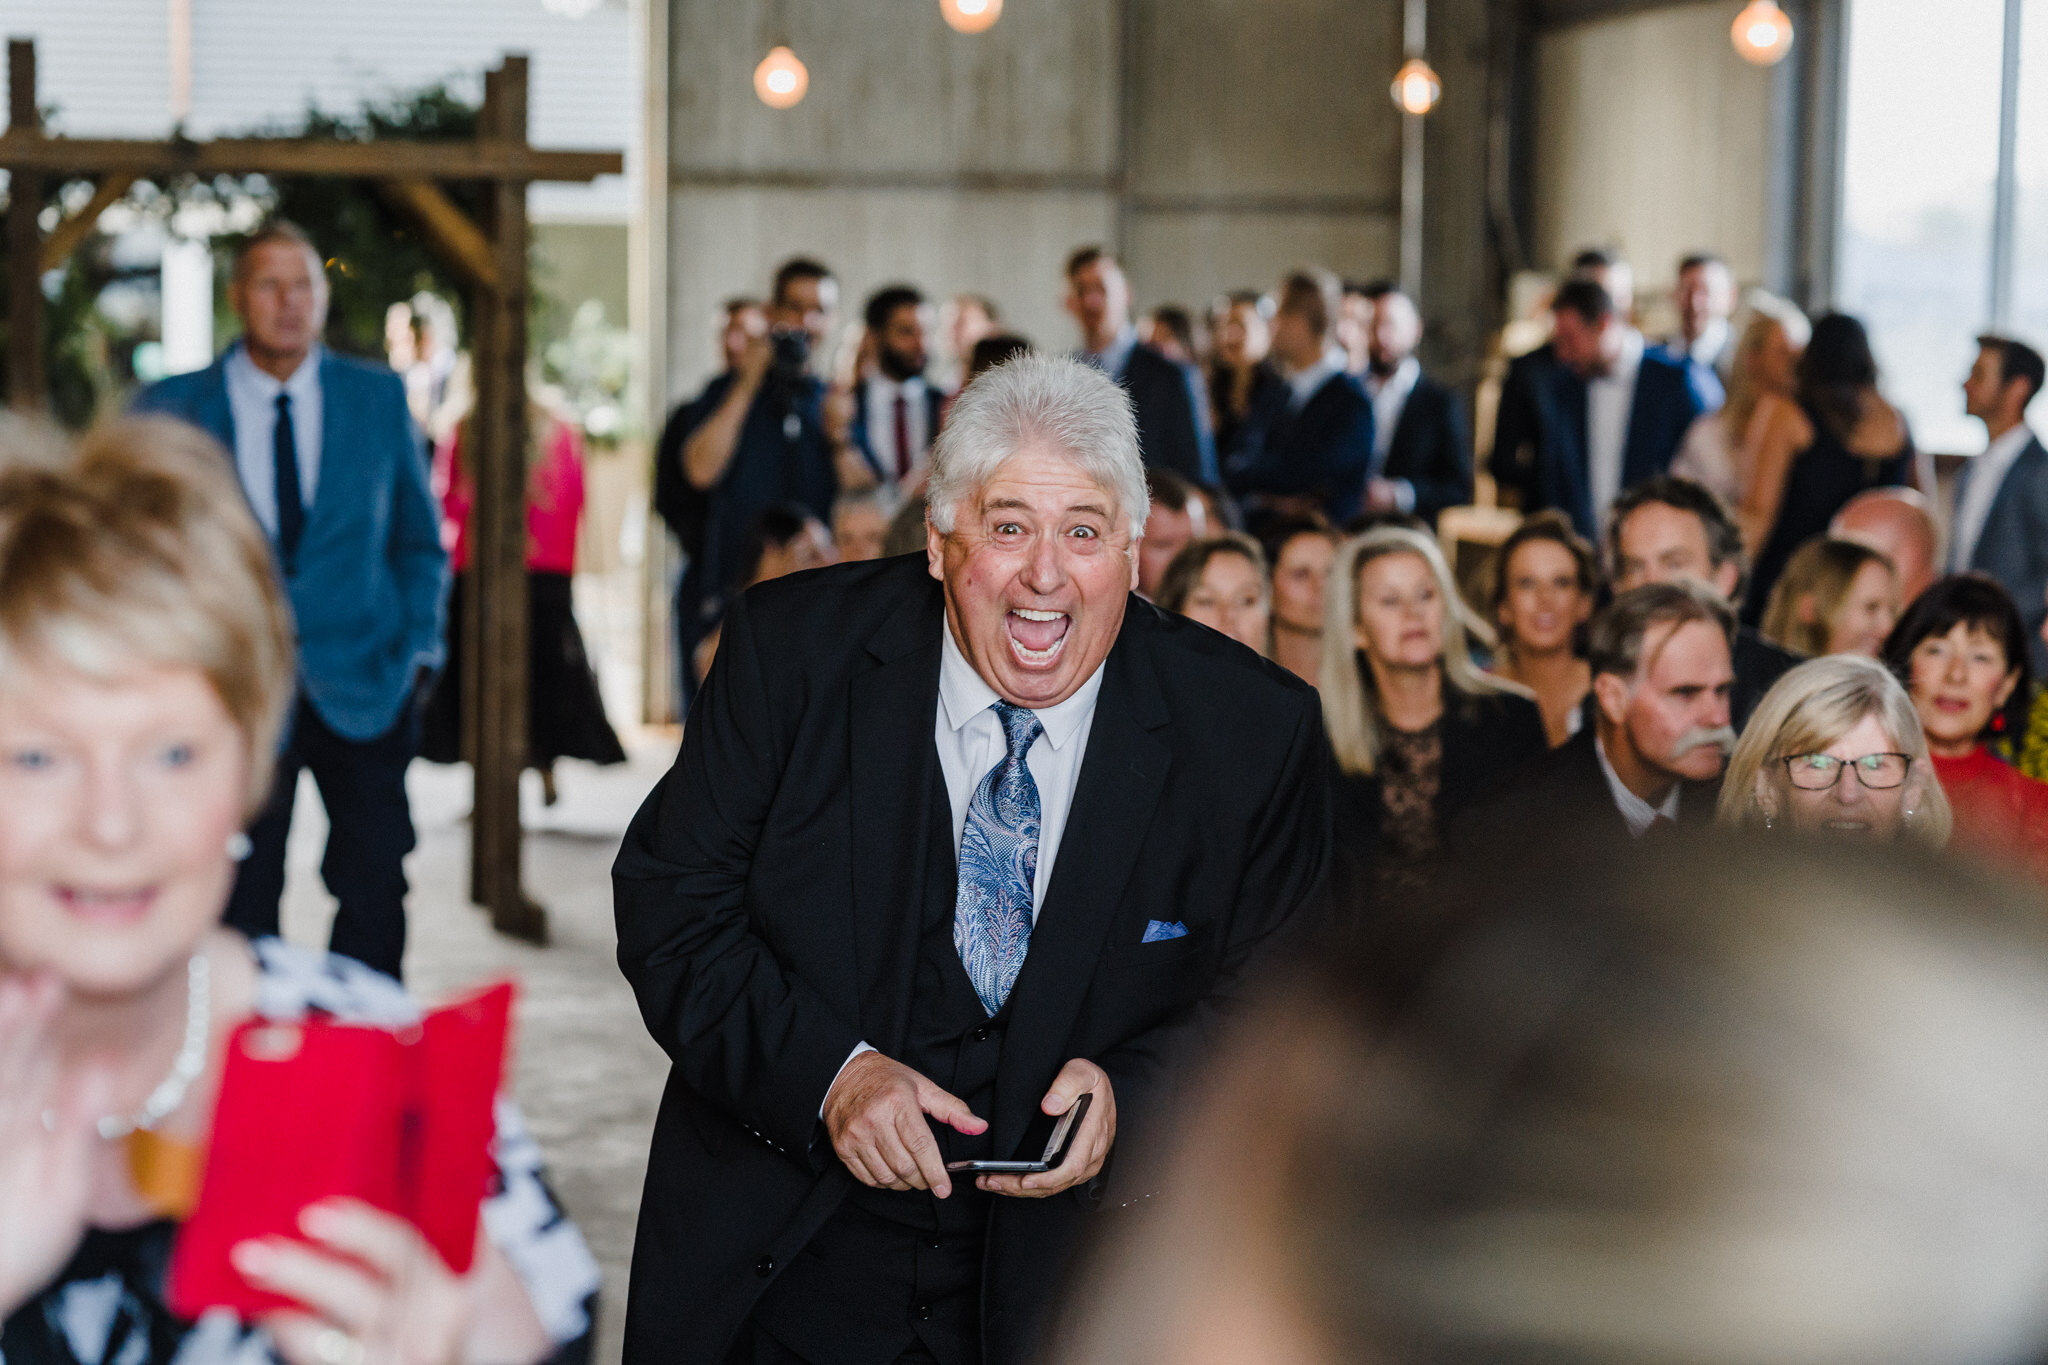 Corey Wright Photographer_Candid Wedding Moments_018.jpg